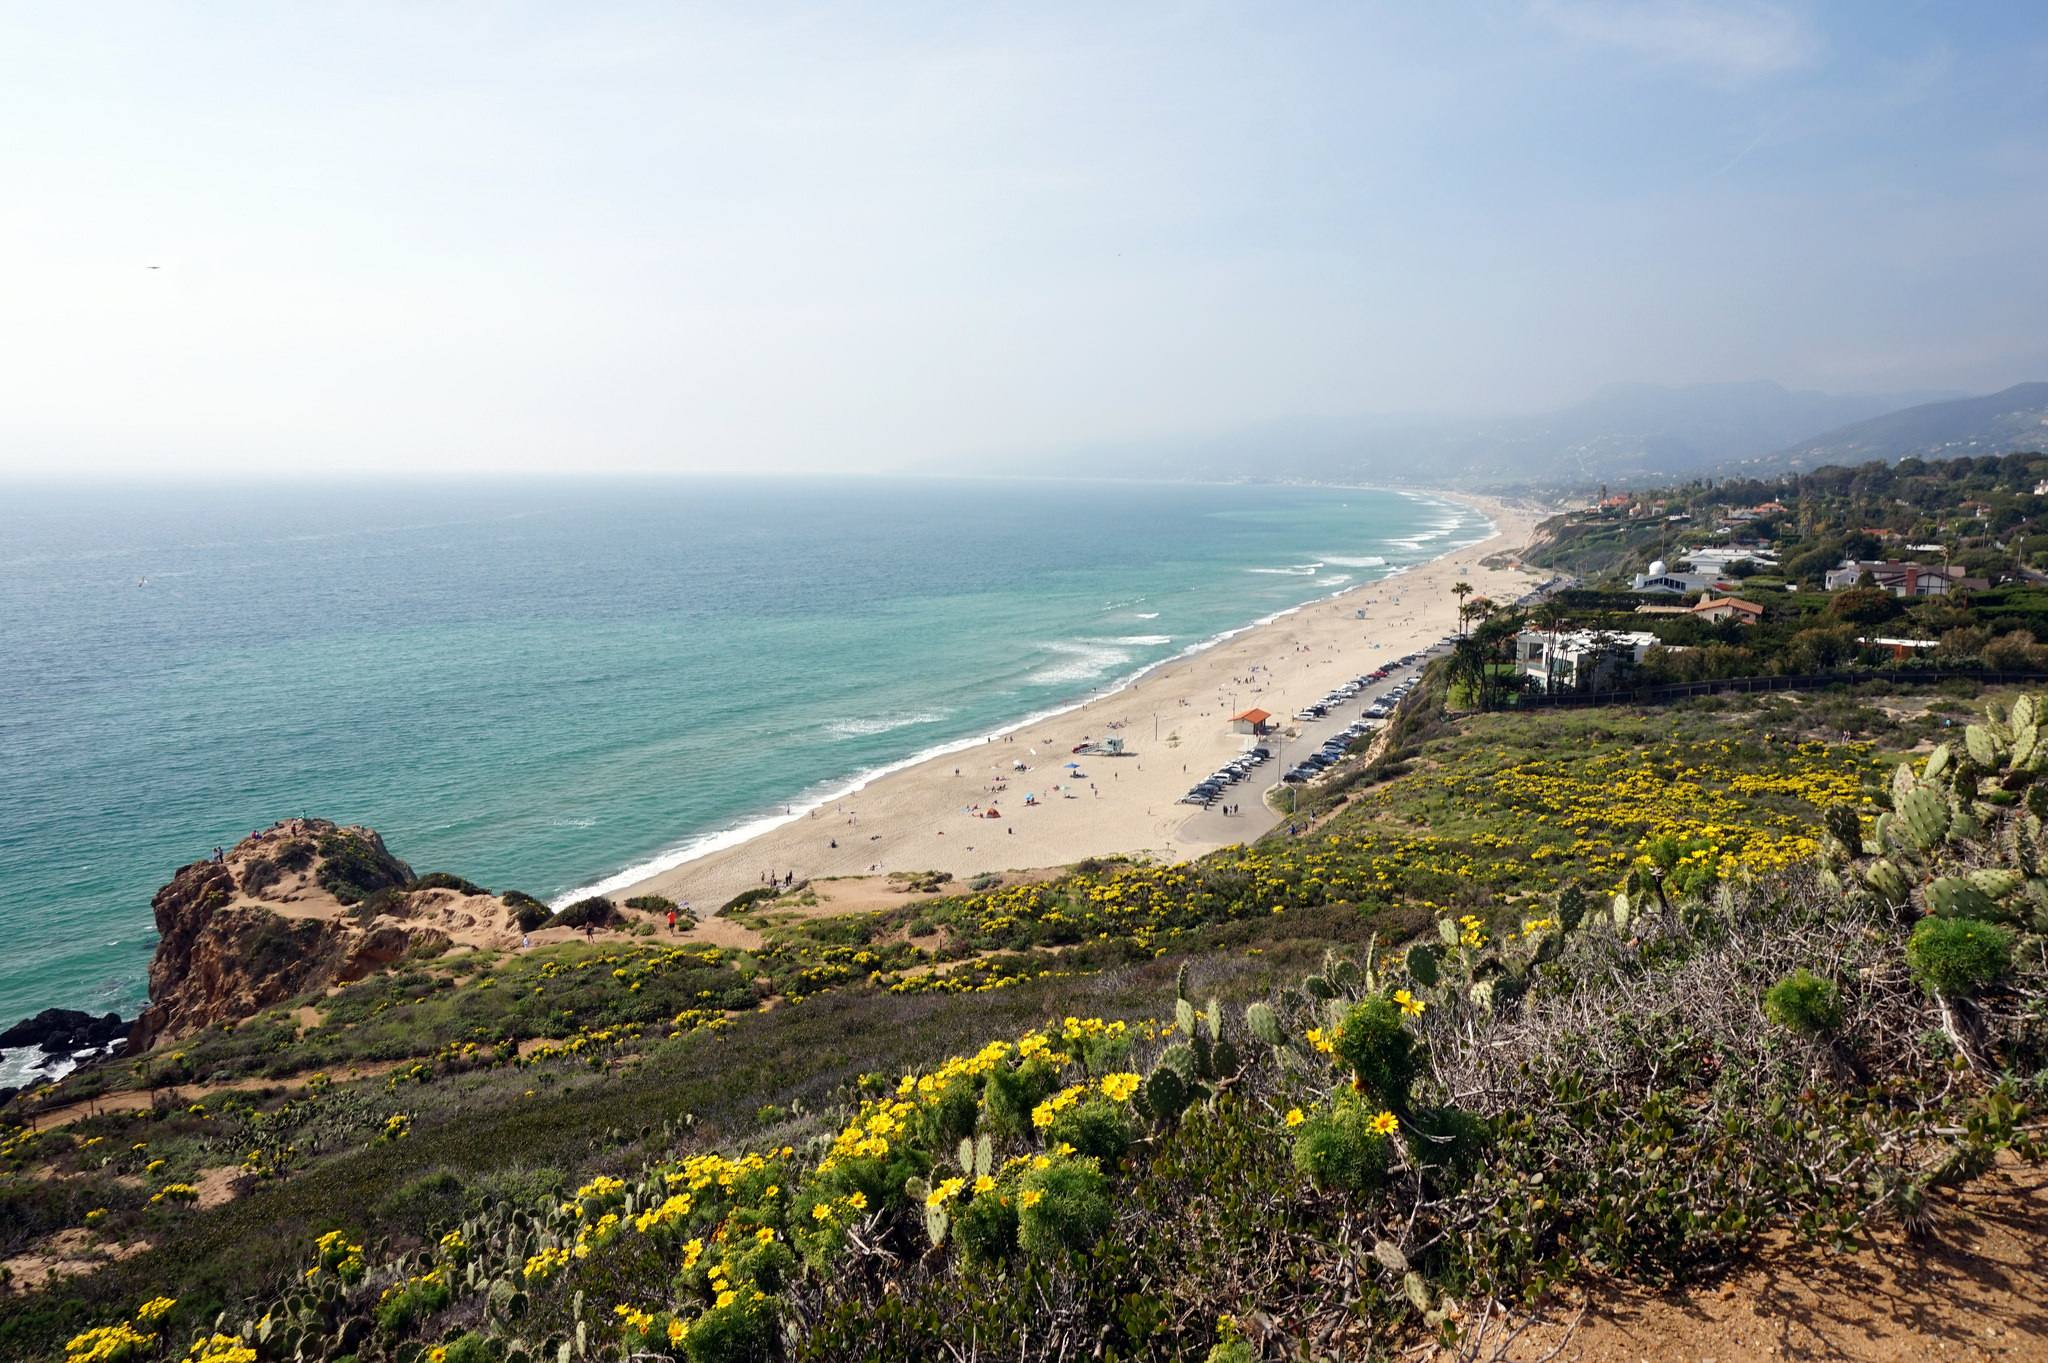 Westward Beach from Point Dume State Park